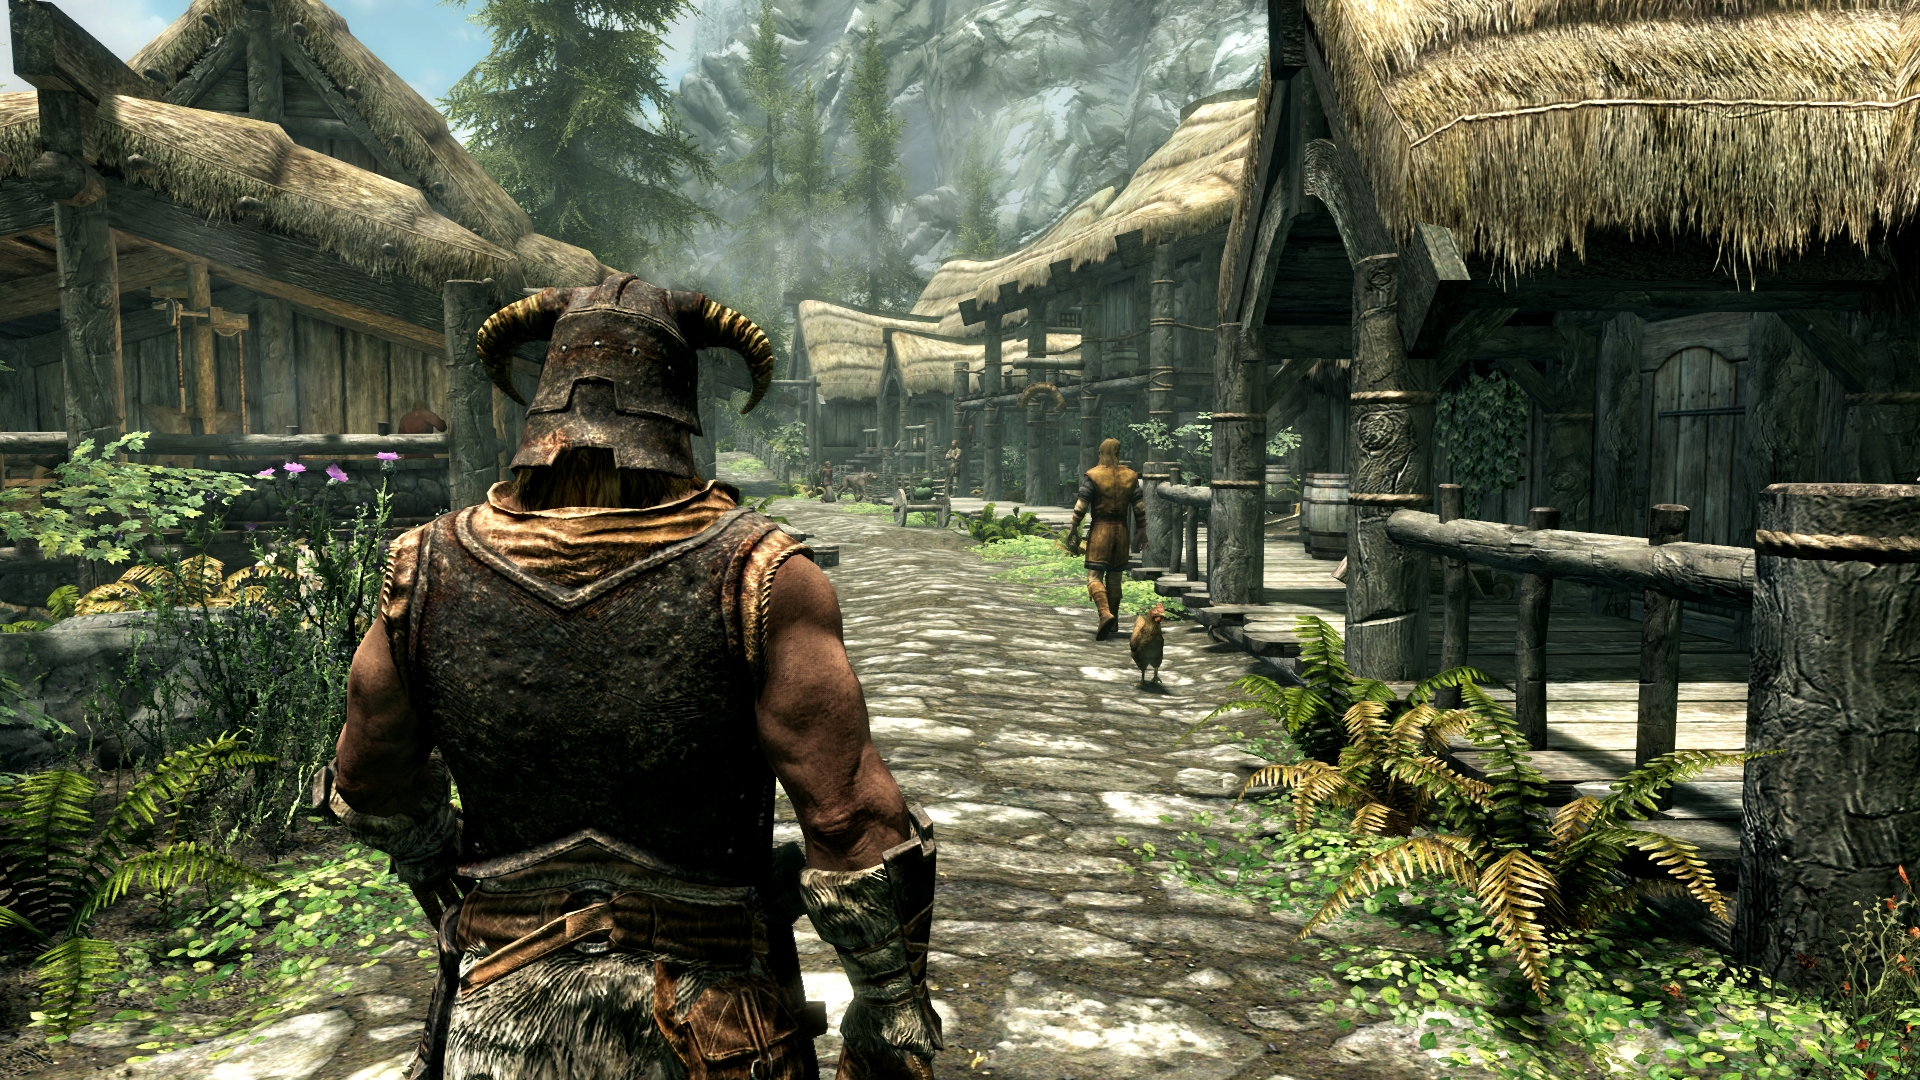 Skyrim: Special Edition - are you ready to play it all again?